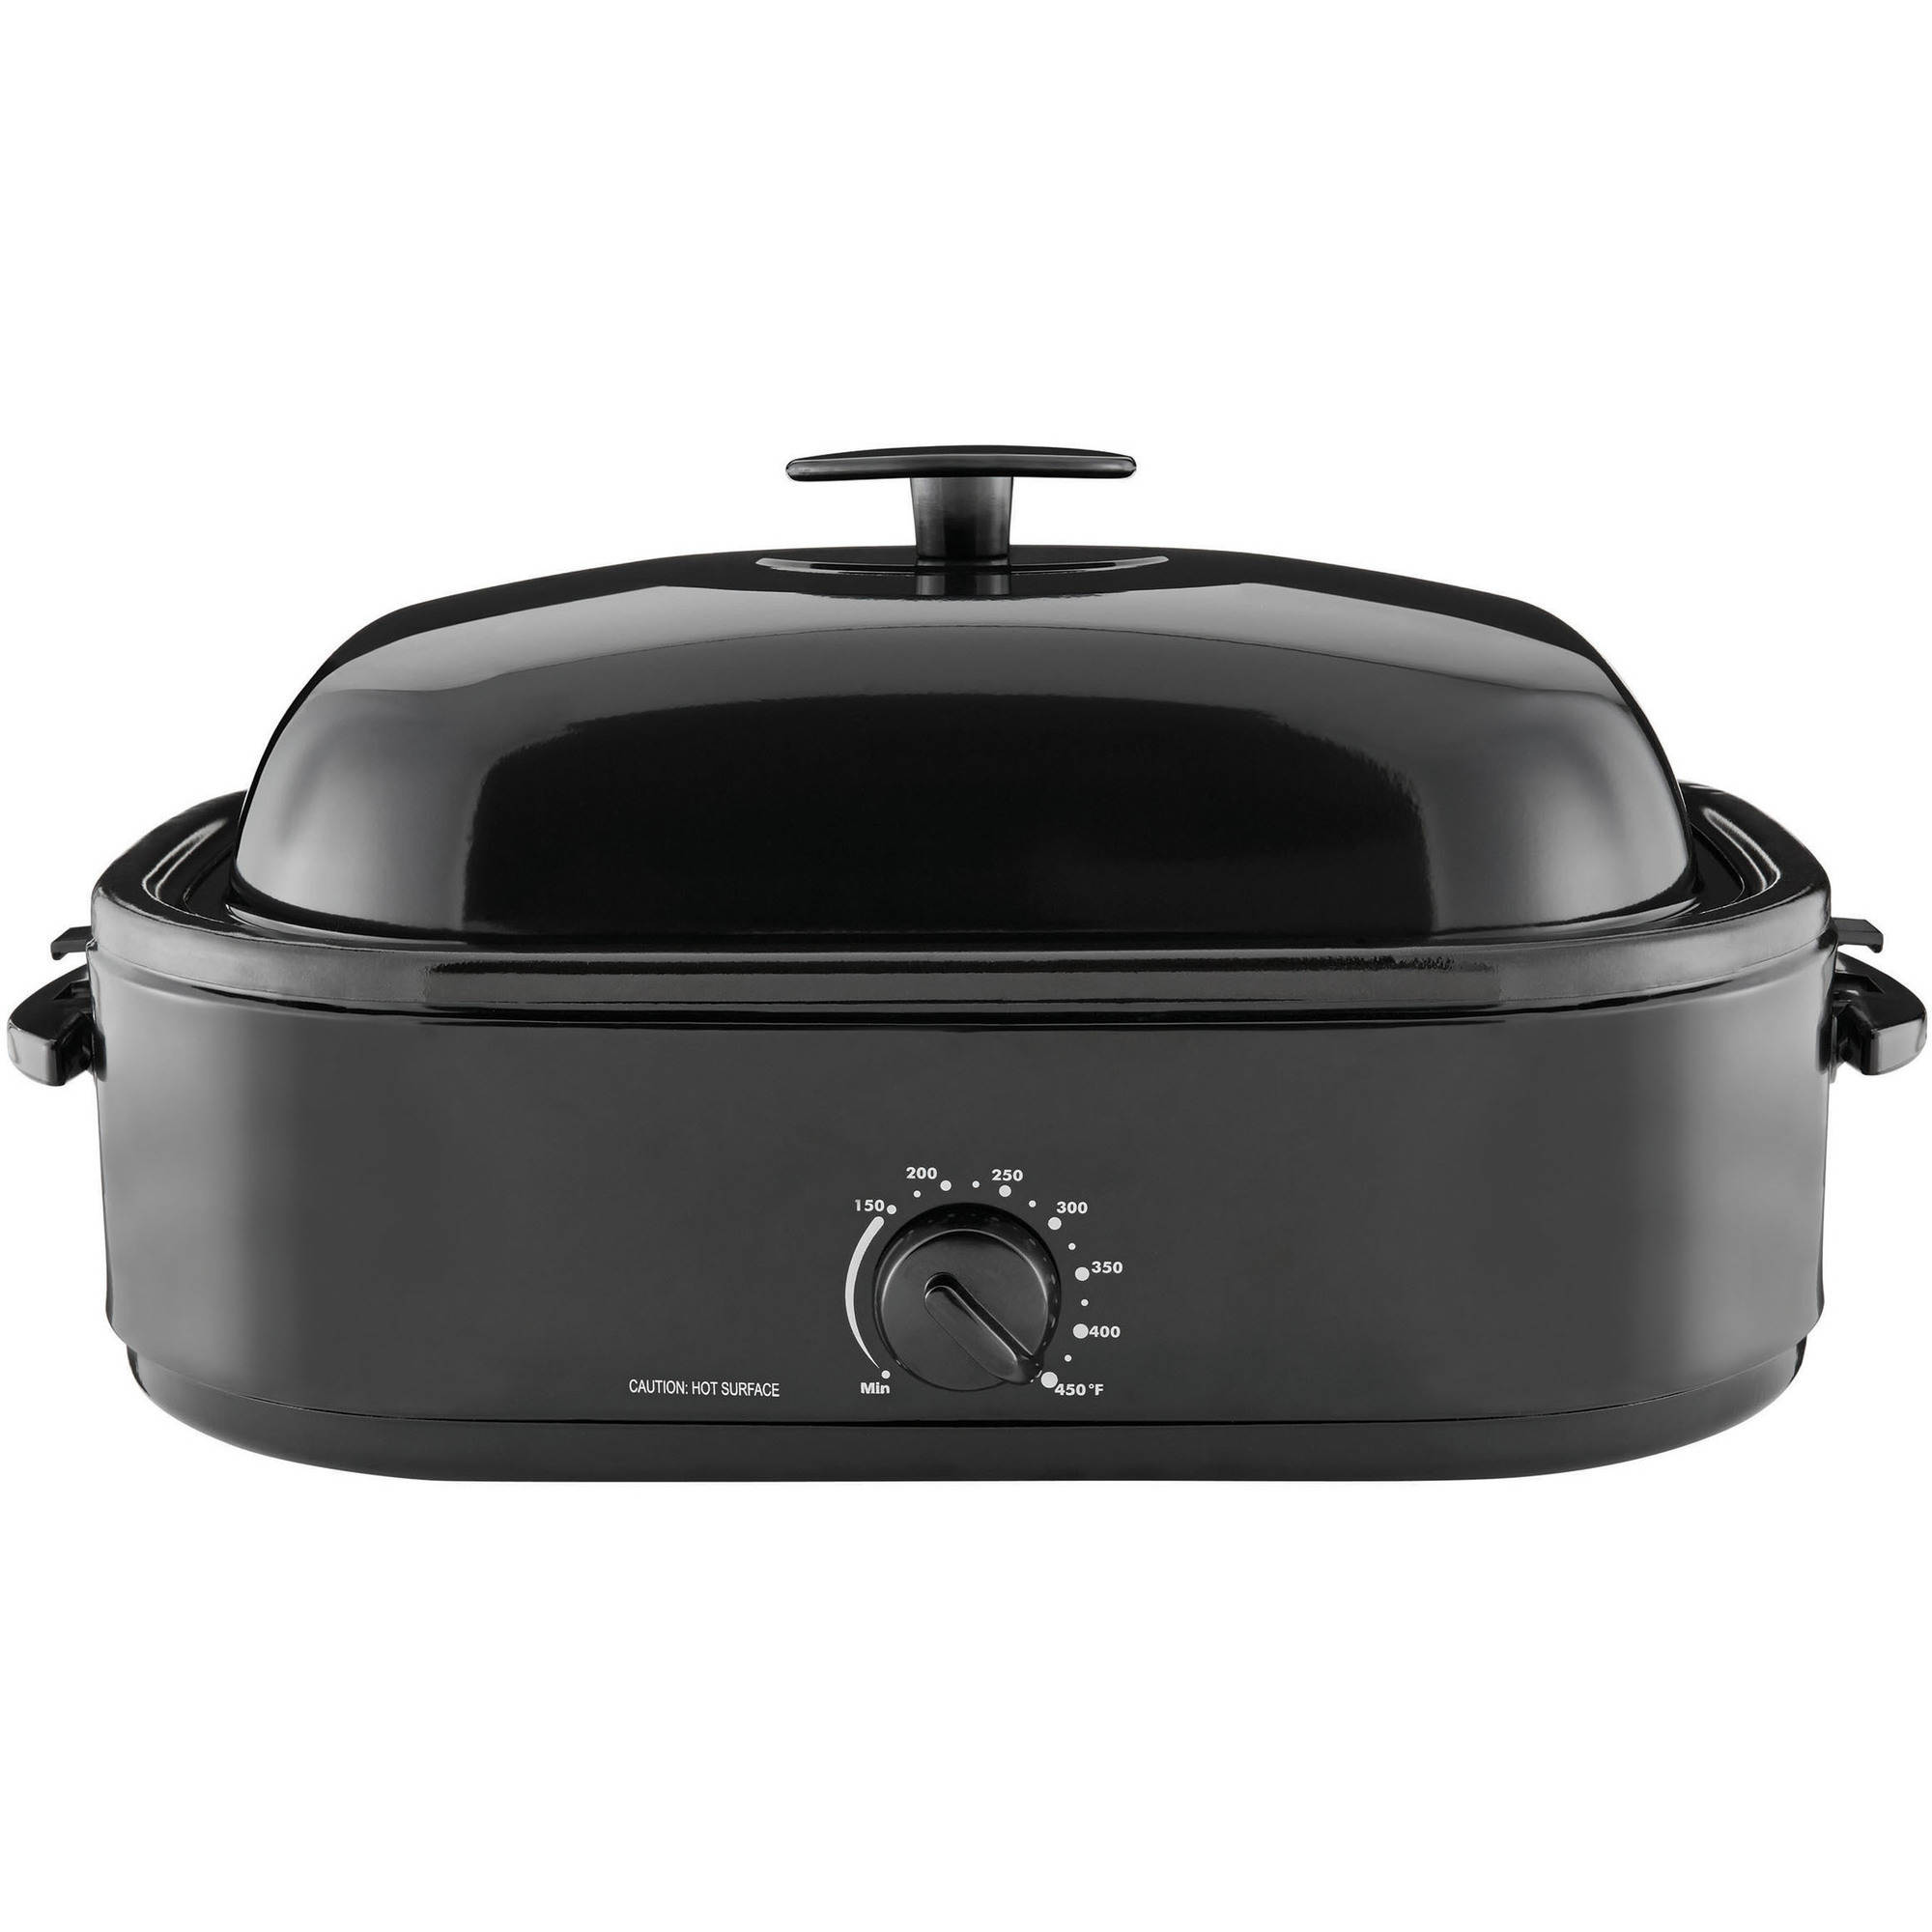 mainstays 20pound turkey roaster with highdome lid 14quart